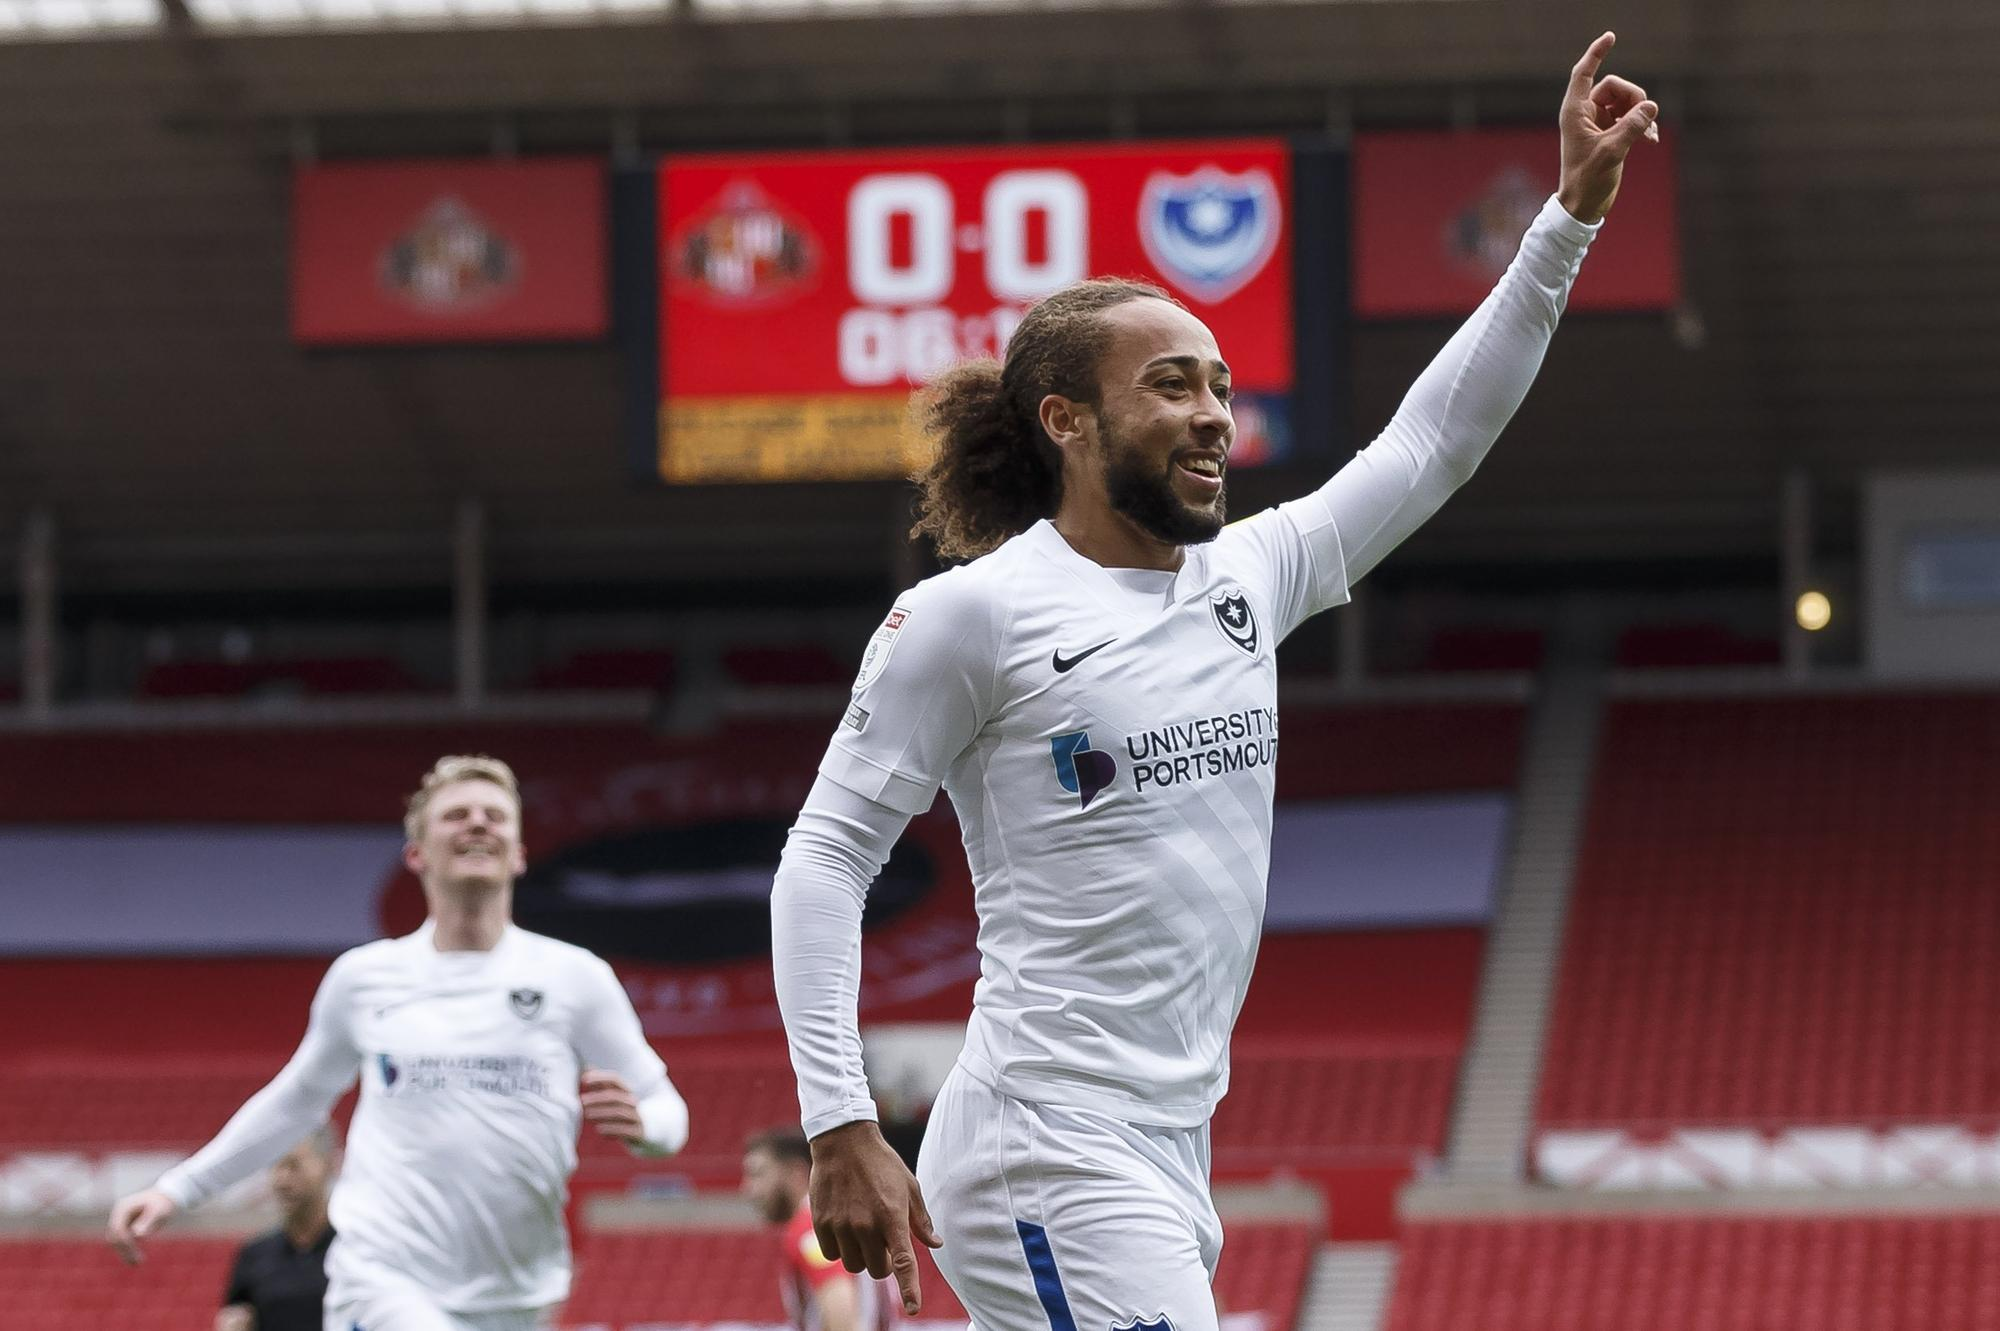 New-look Portsmouth show they've grown in stature - but a week is a long time in football